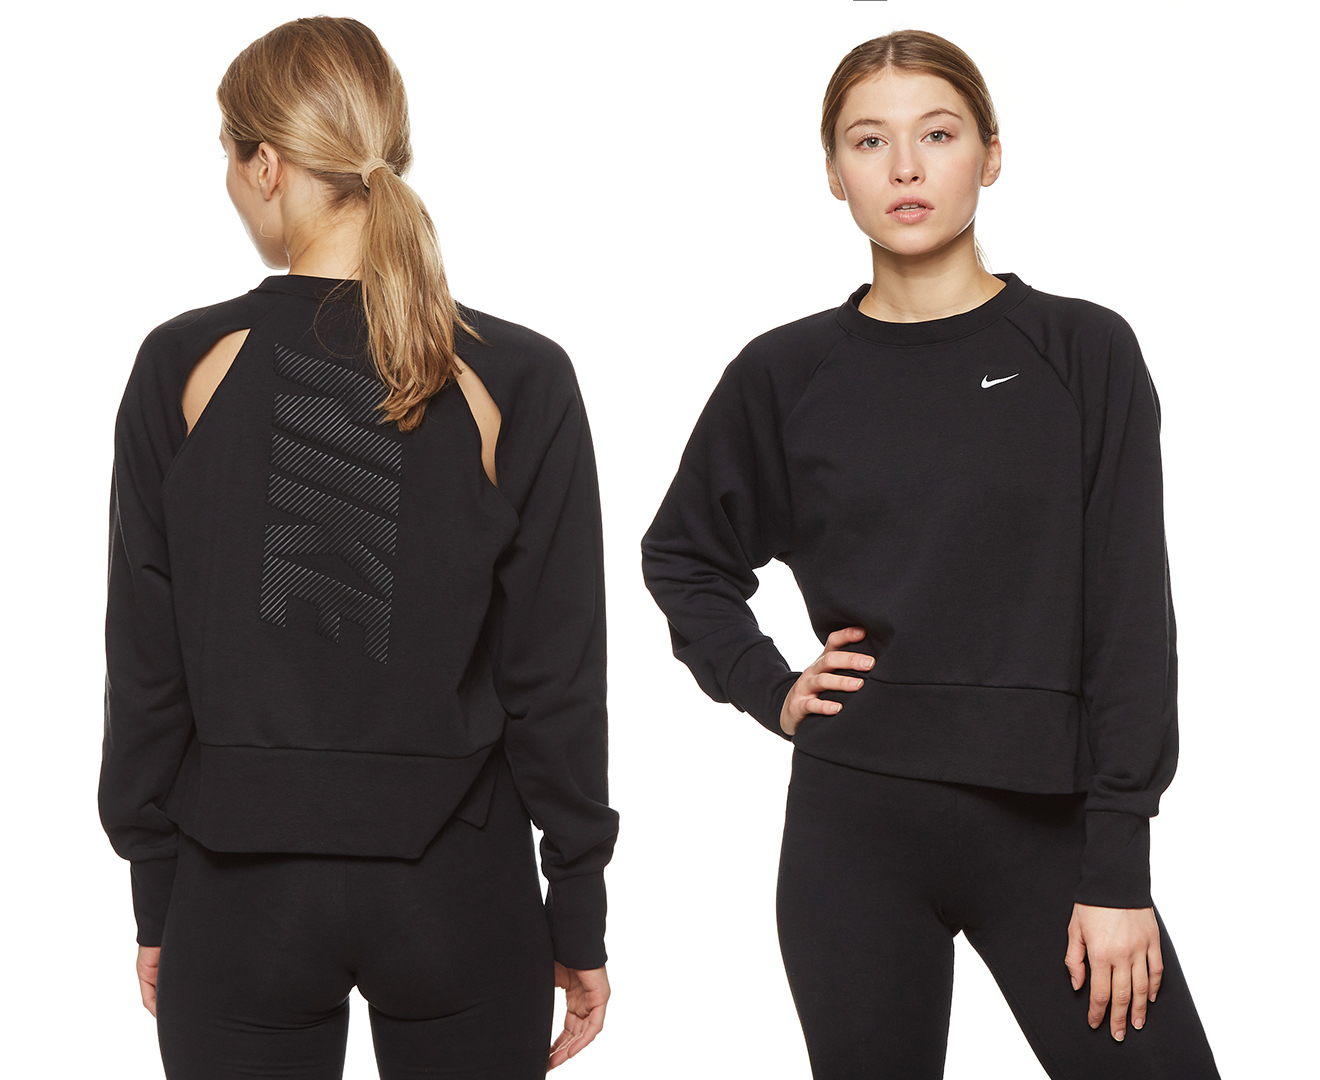 Nike Women S Dri Fit Long Sleeve Yoga Training Top Black Cudo Shopping Also set sale alerts and shop exclusive offers only on shopstyle. cudo shopping